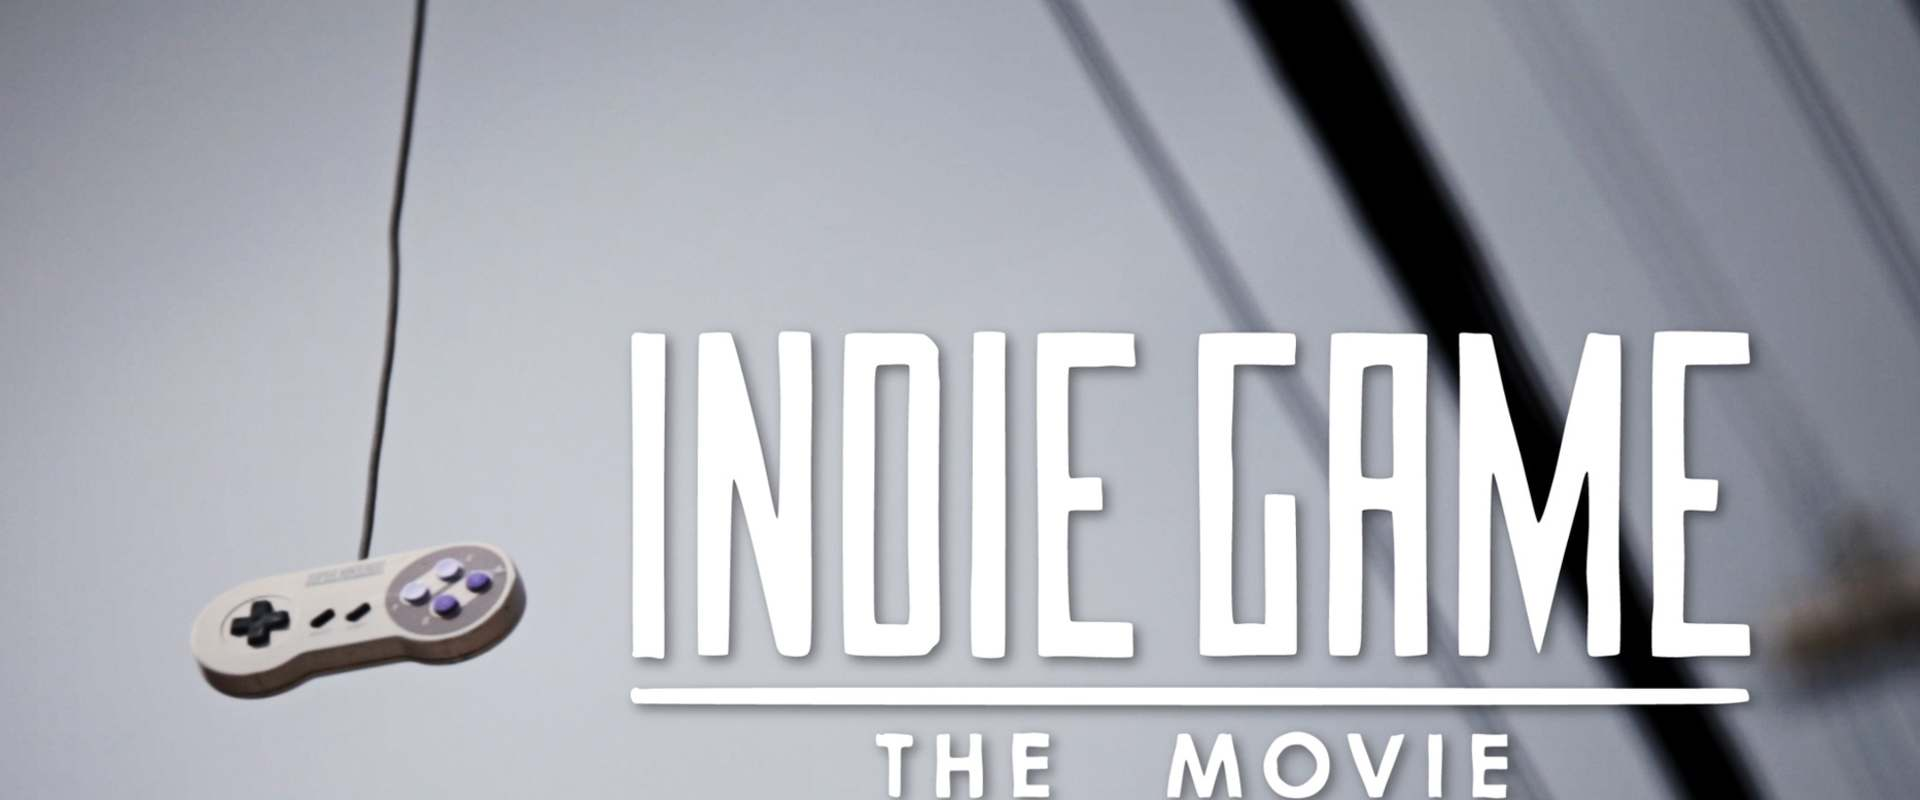 Indie Game: The Movie background 1